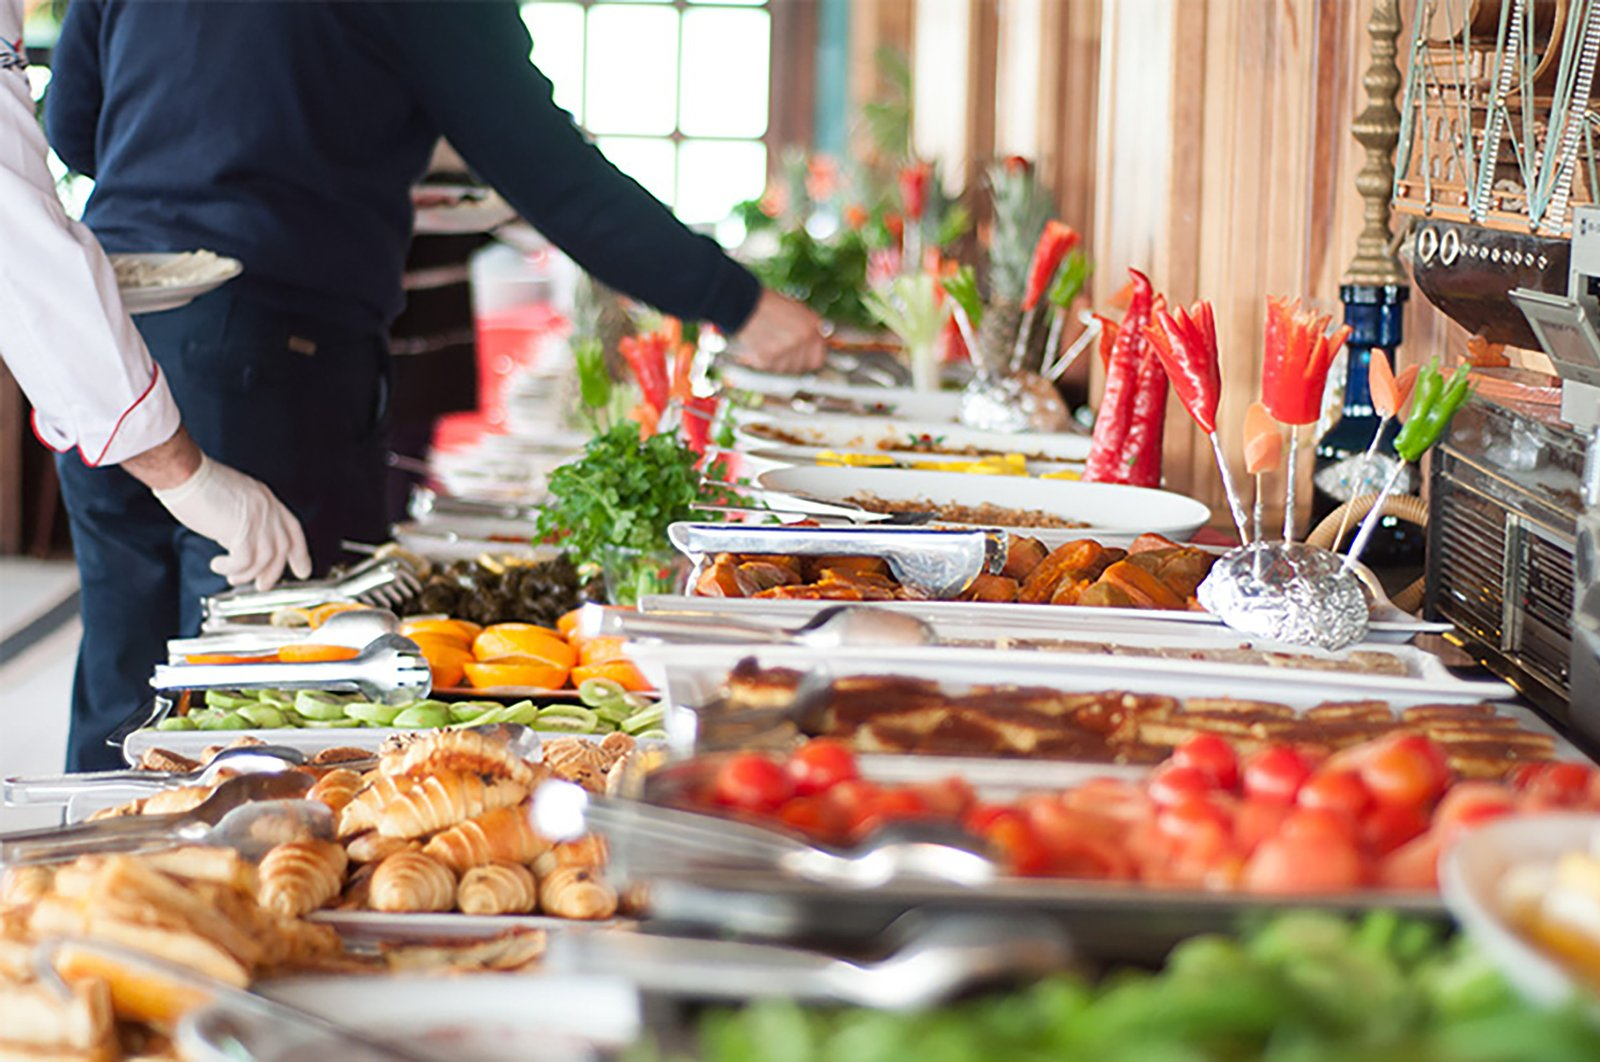 The coronavirus outbreak will change tourists' eating habits, causing them to avoid open buffets. (File Photo)